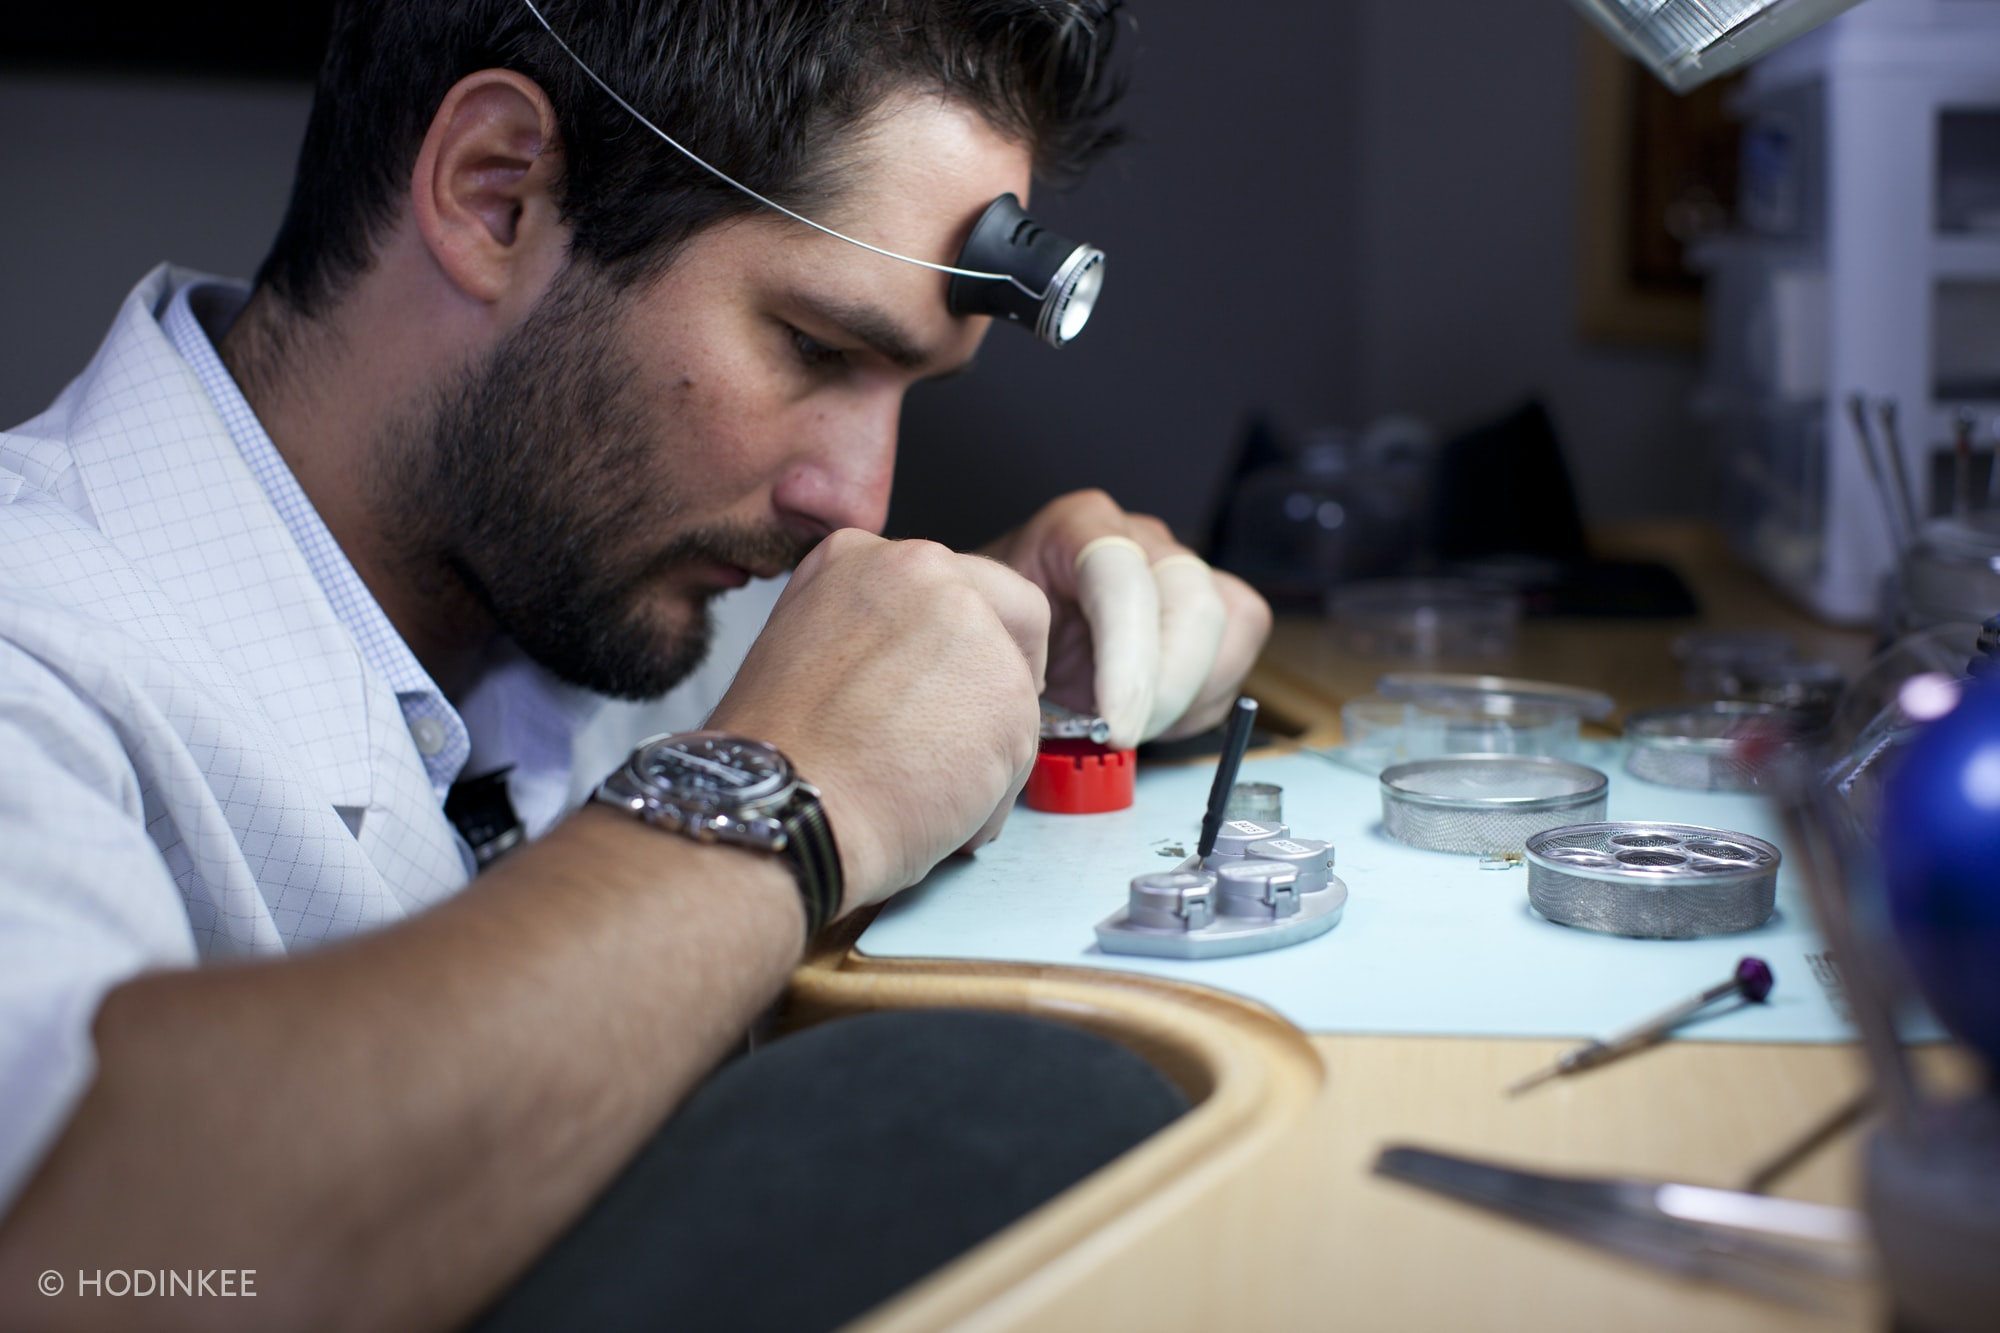 Manfredi Jewels Watchmakers VIDEO: How To Service The 234-Component Caliber 1861 Inside The Omega Speedmaster VIDEO: How To Service The 234-Component Caliber 1861 Inside The Omega Speedmaster omega speedmaster caliber 1861 16